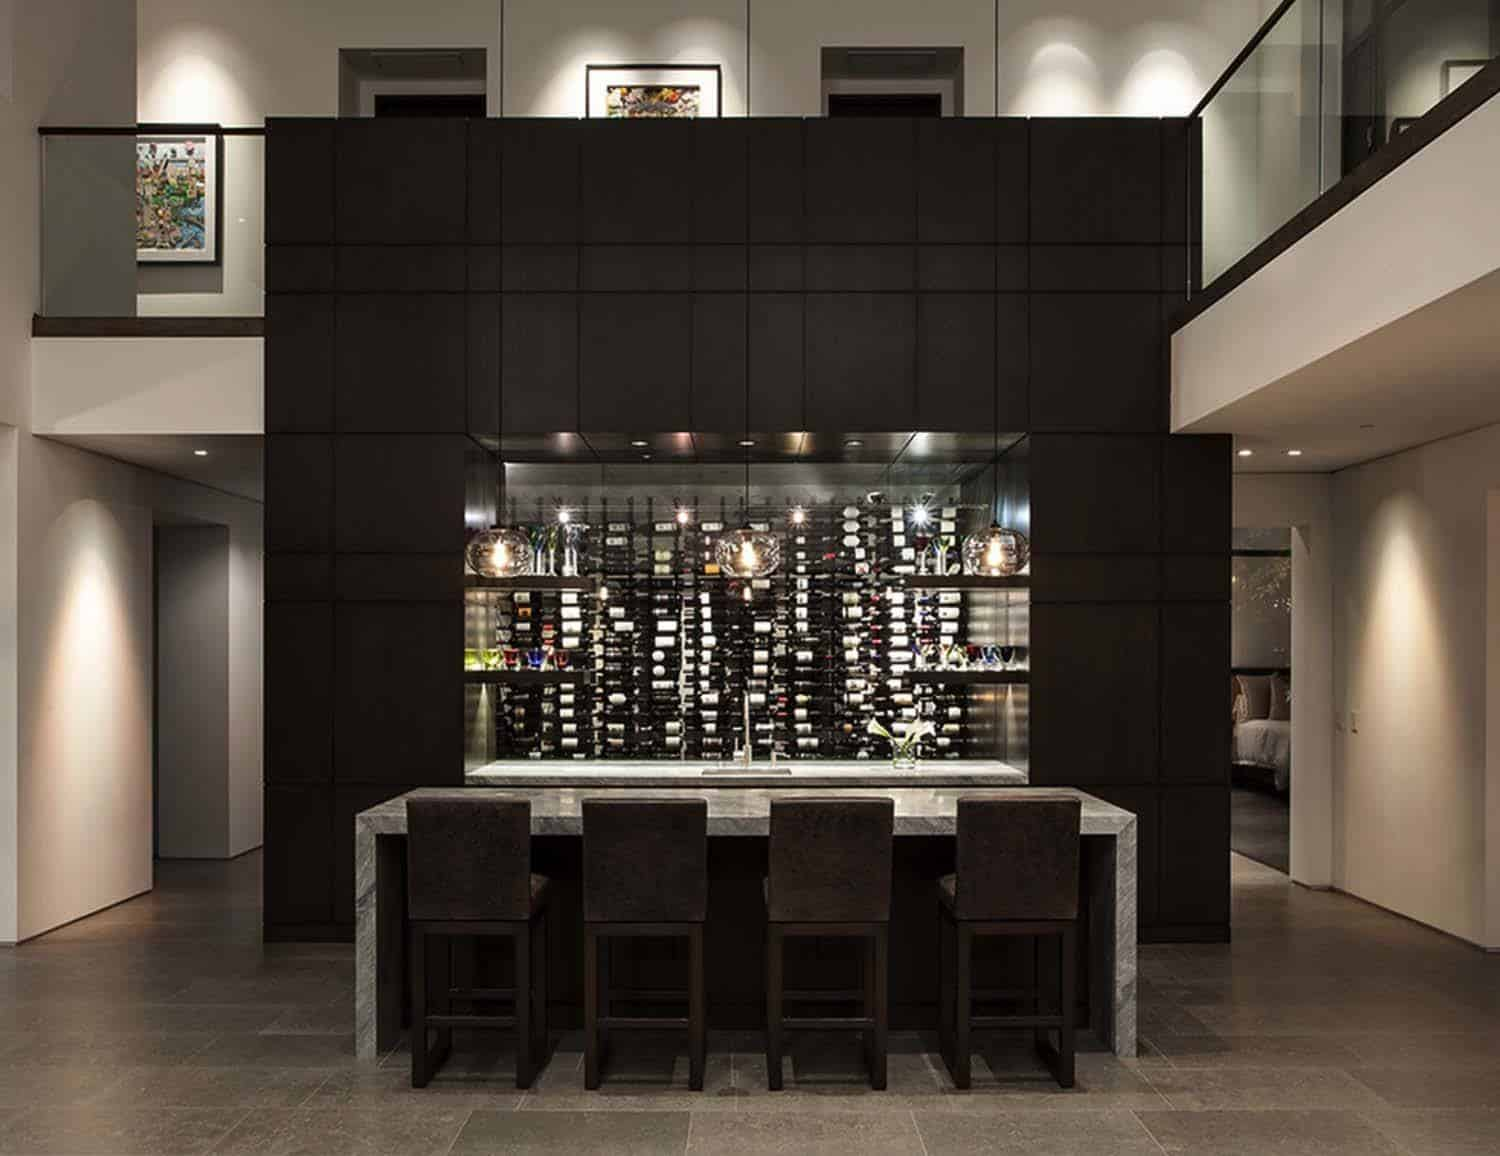 Contemporary Home-Laidlaw Schultz Architects-05-1 Kindesign